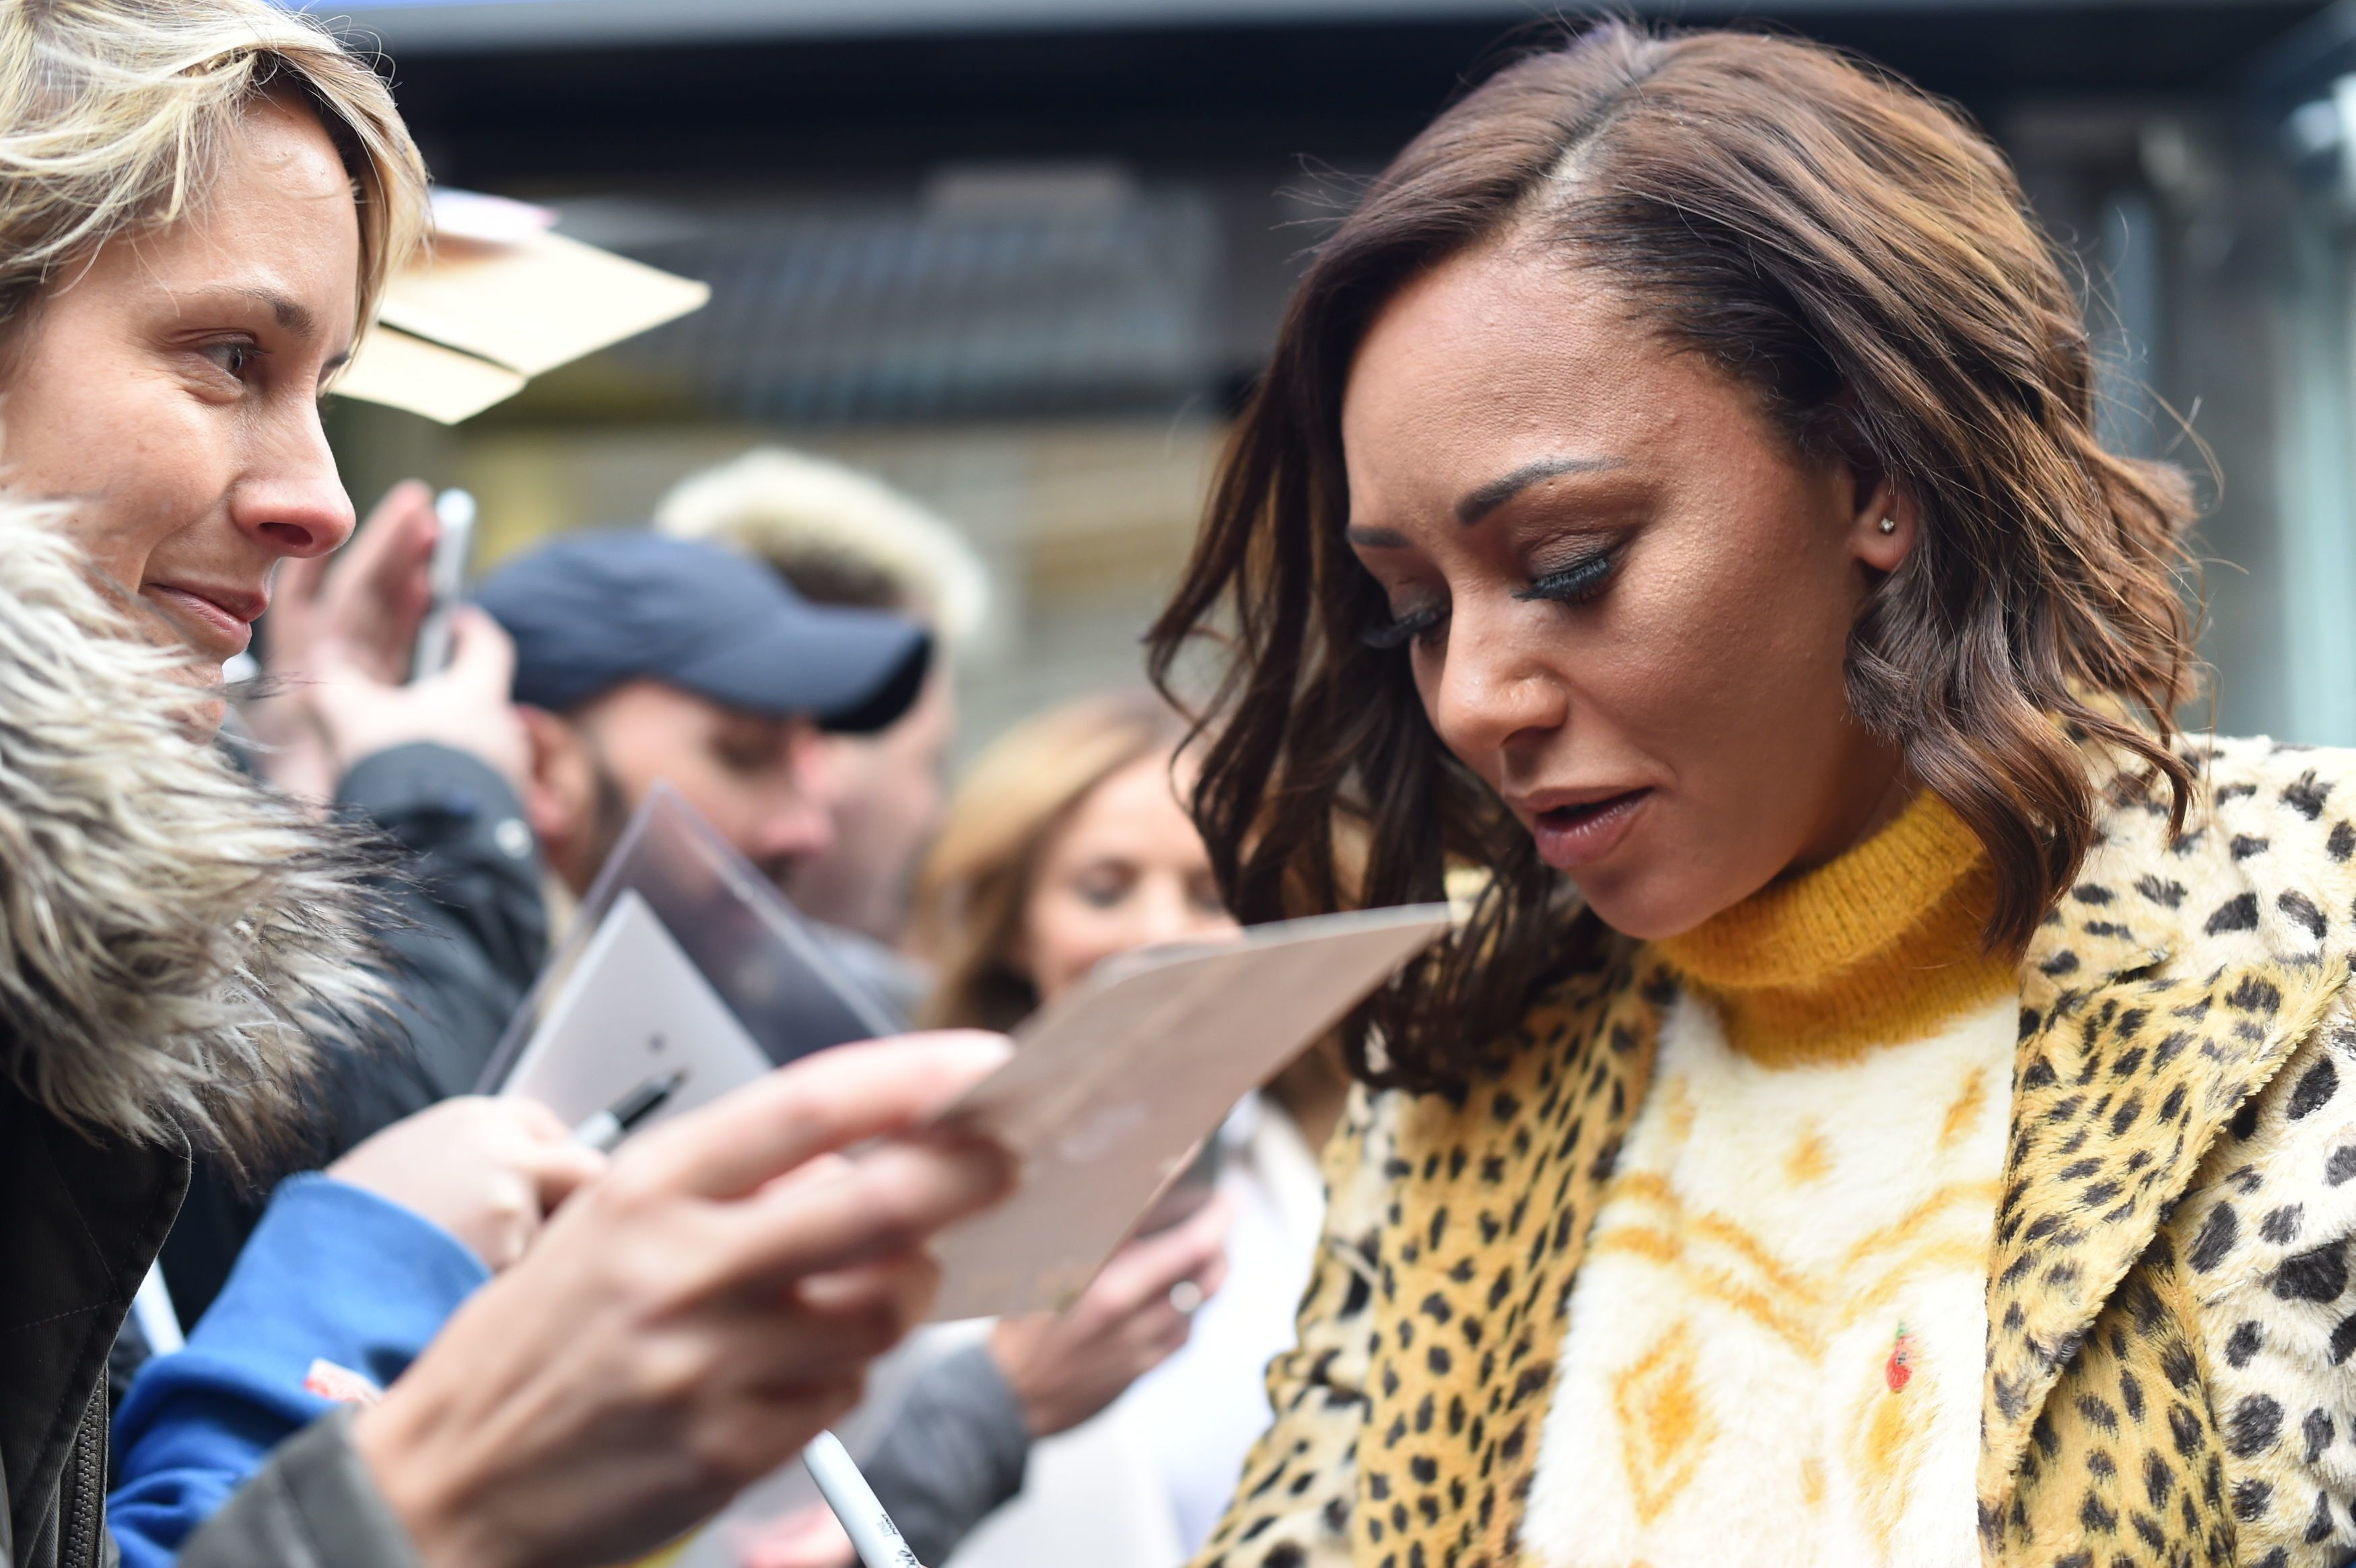 'SICK': Mel B Slams 'Dangerous' And 'Sick' Person Who 'Deliberately' Slashed Her